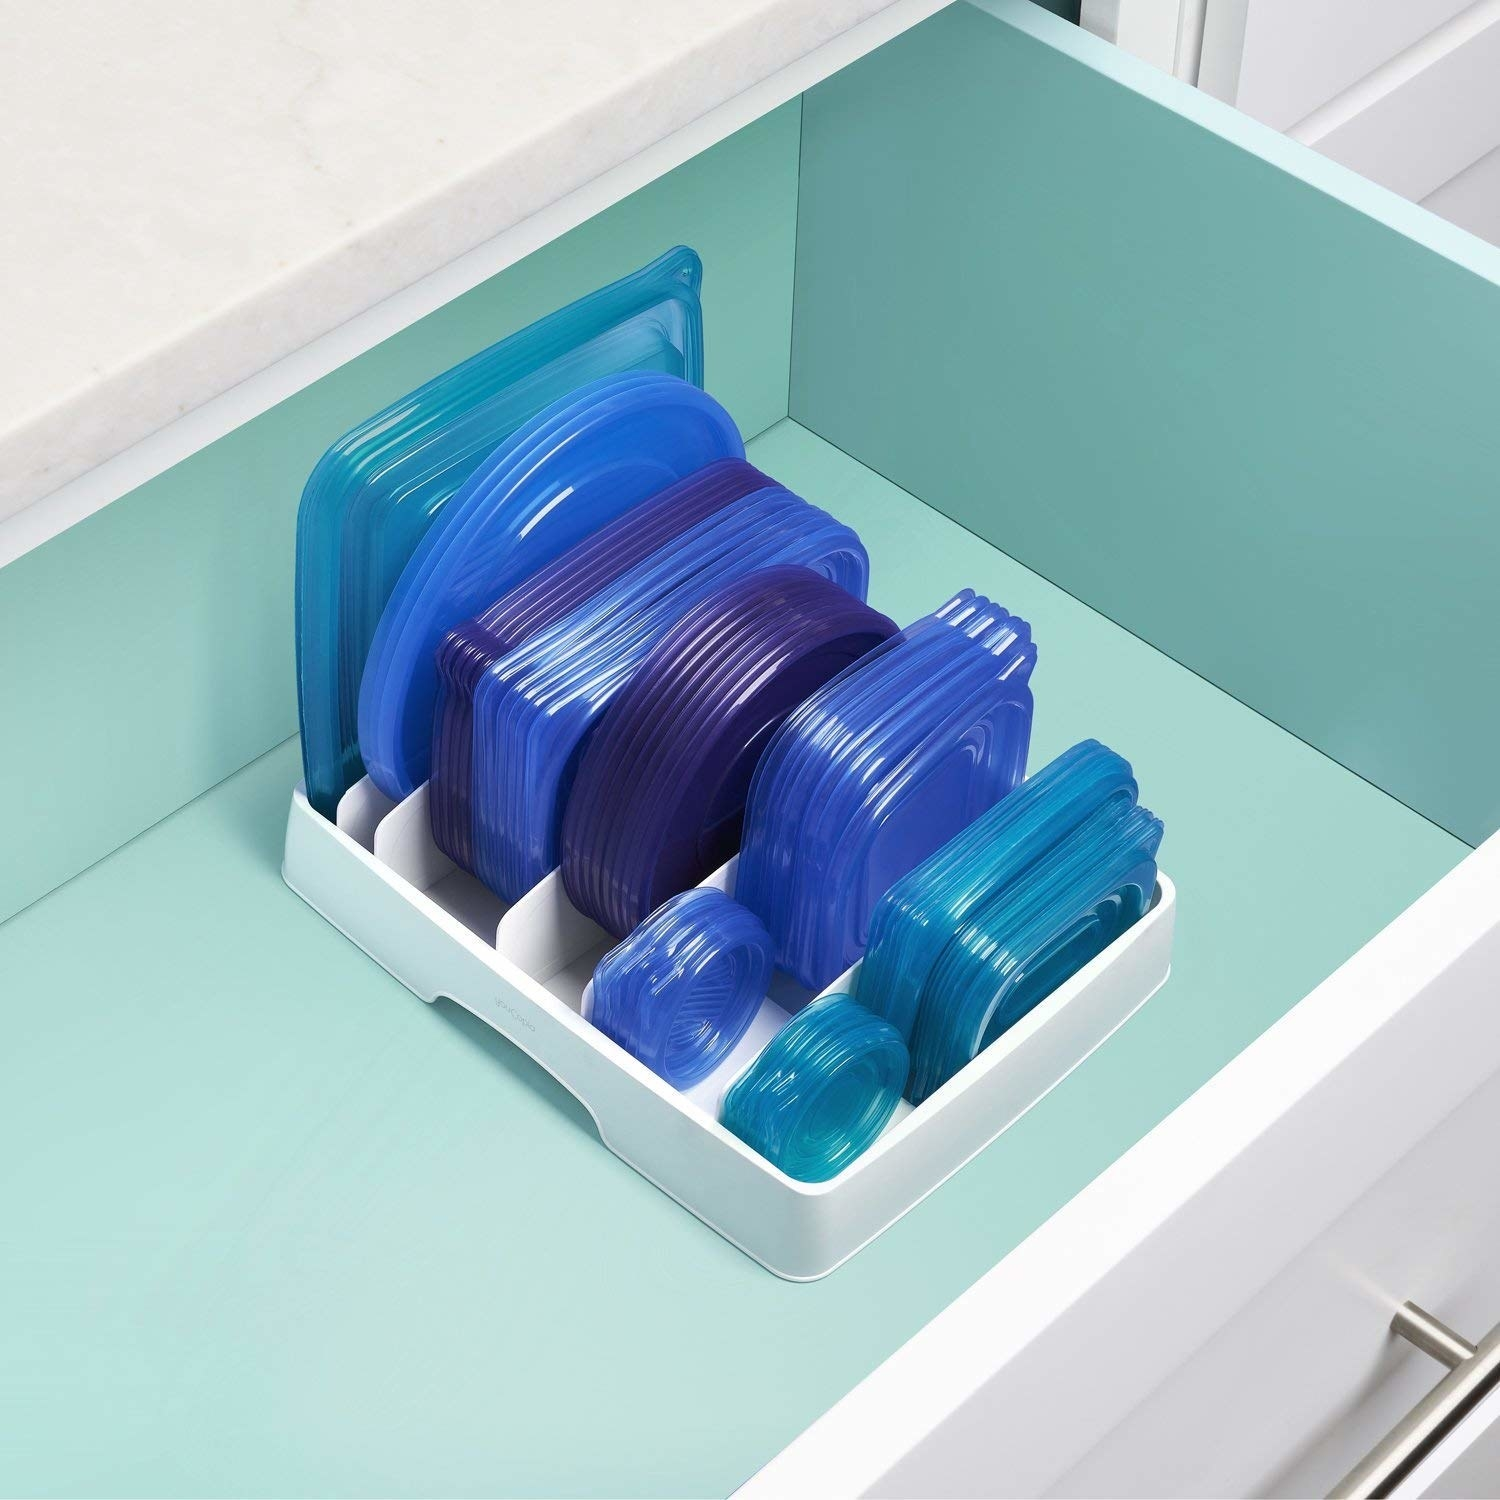 The organizer in a drawer holding six sizes of container lids